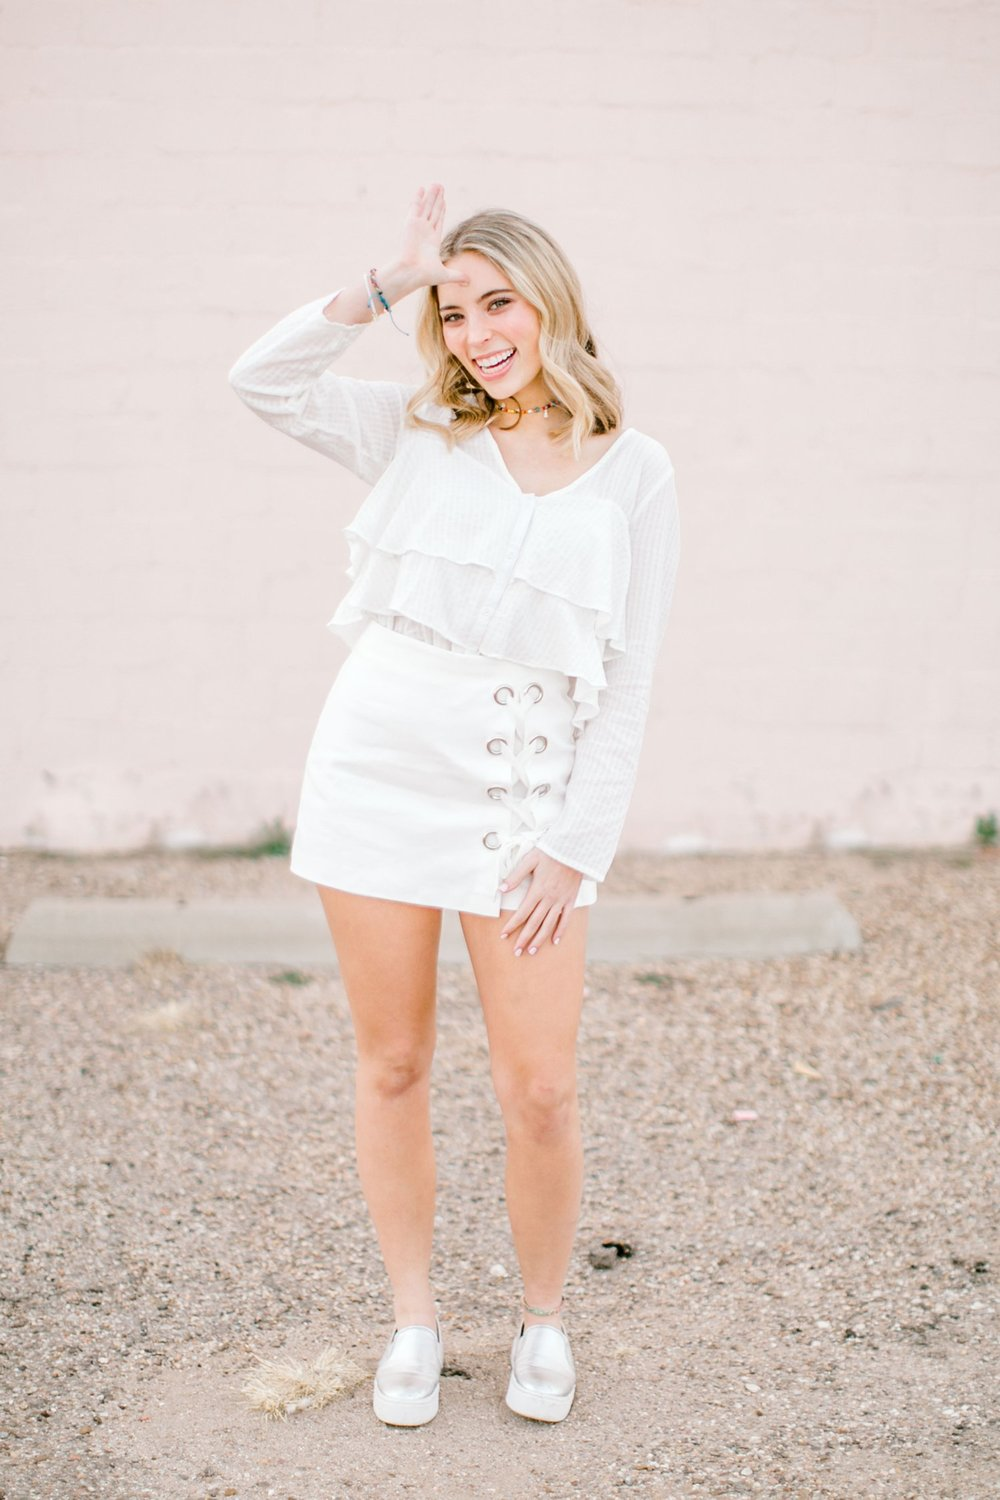 abby-macha-all-saints-high-school-lubbock-senior-photographer_0011.jpg